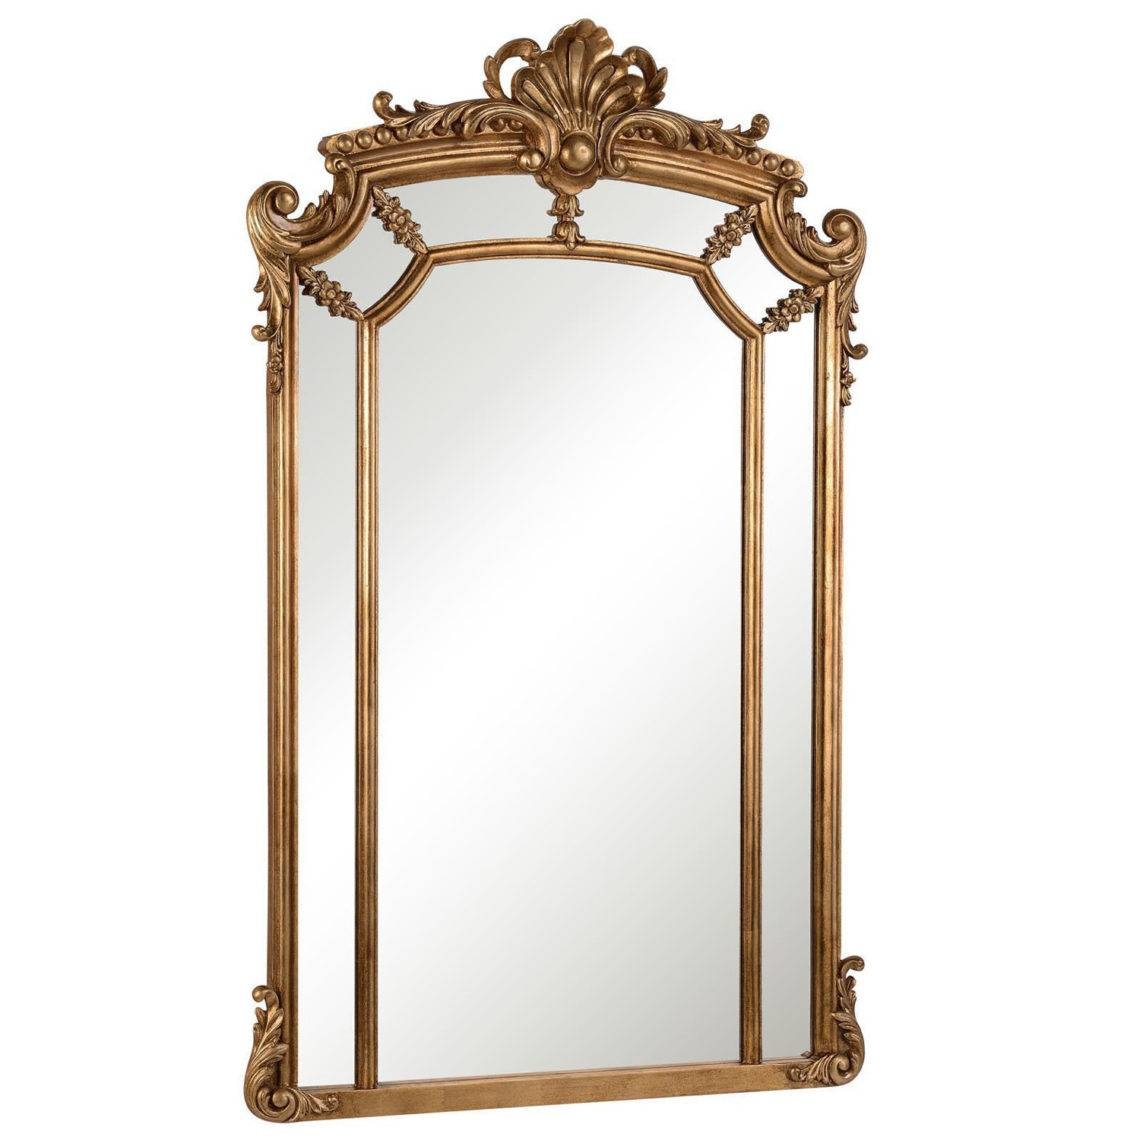 Long Wall Mirrors Furniture Rle Bathroom Exquisite White, Lovable Pertaining To Long Gold Mirrors (View 20 of 25)